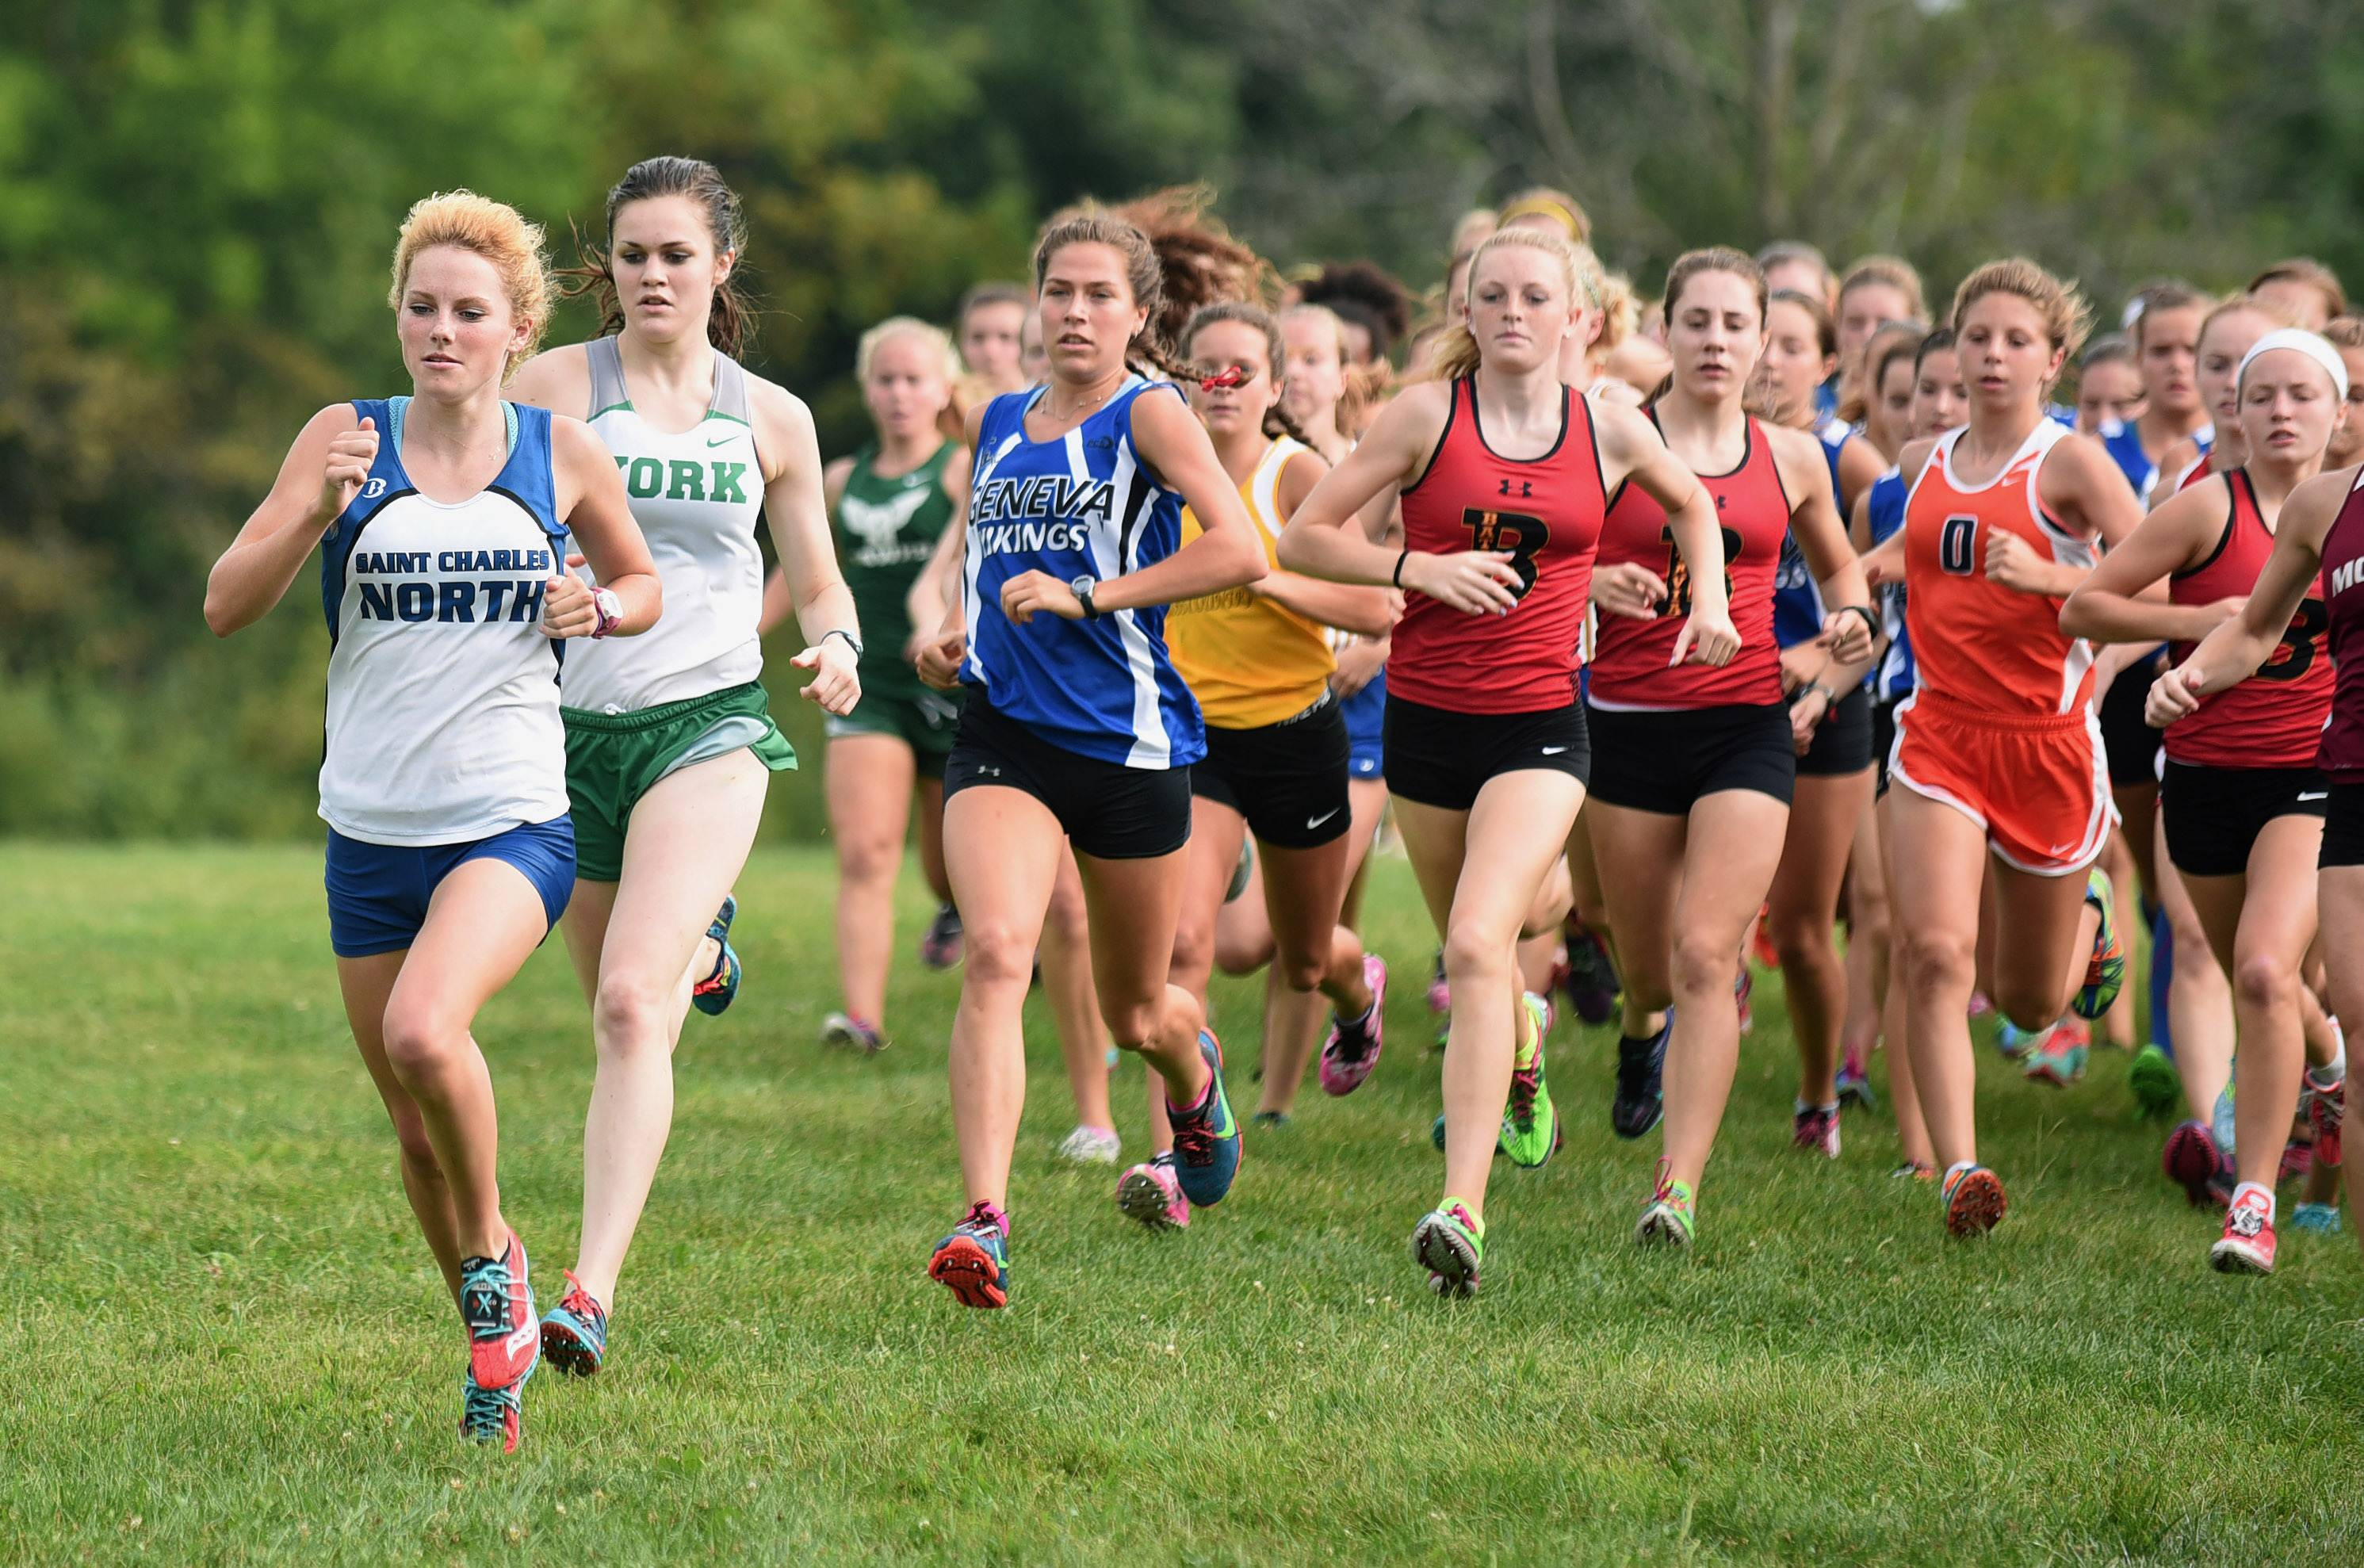 Laura Stoecker/lstoecker@dailyherald.comSt. Charles North's Audrey Ernst leads the pack at the start of the girls varsity run at the St. Charles East Leavey Invitational at LeRoy Oakes Forest Preserve in St. Charles Saturday.